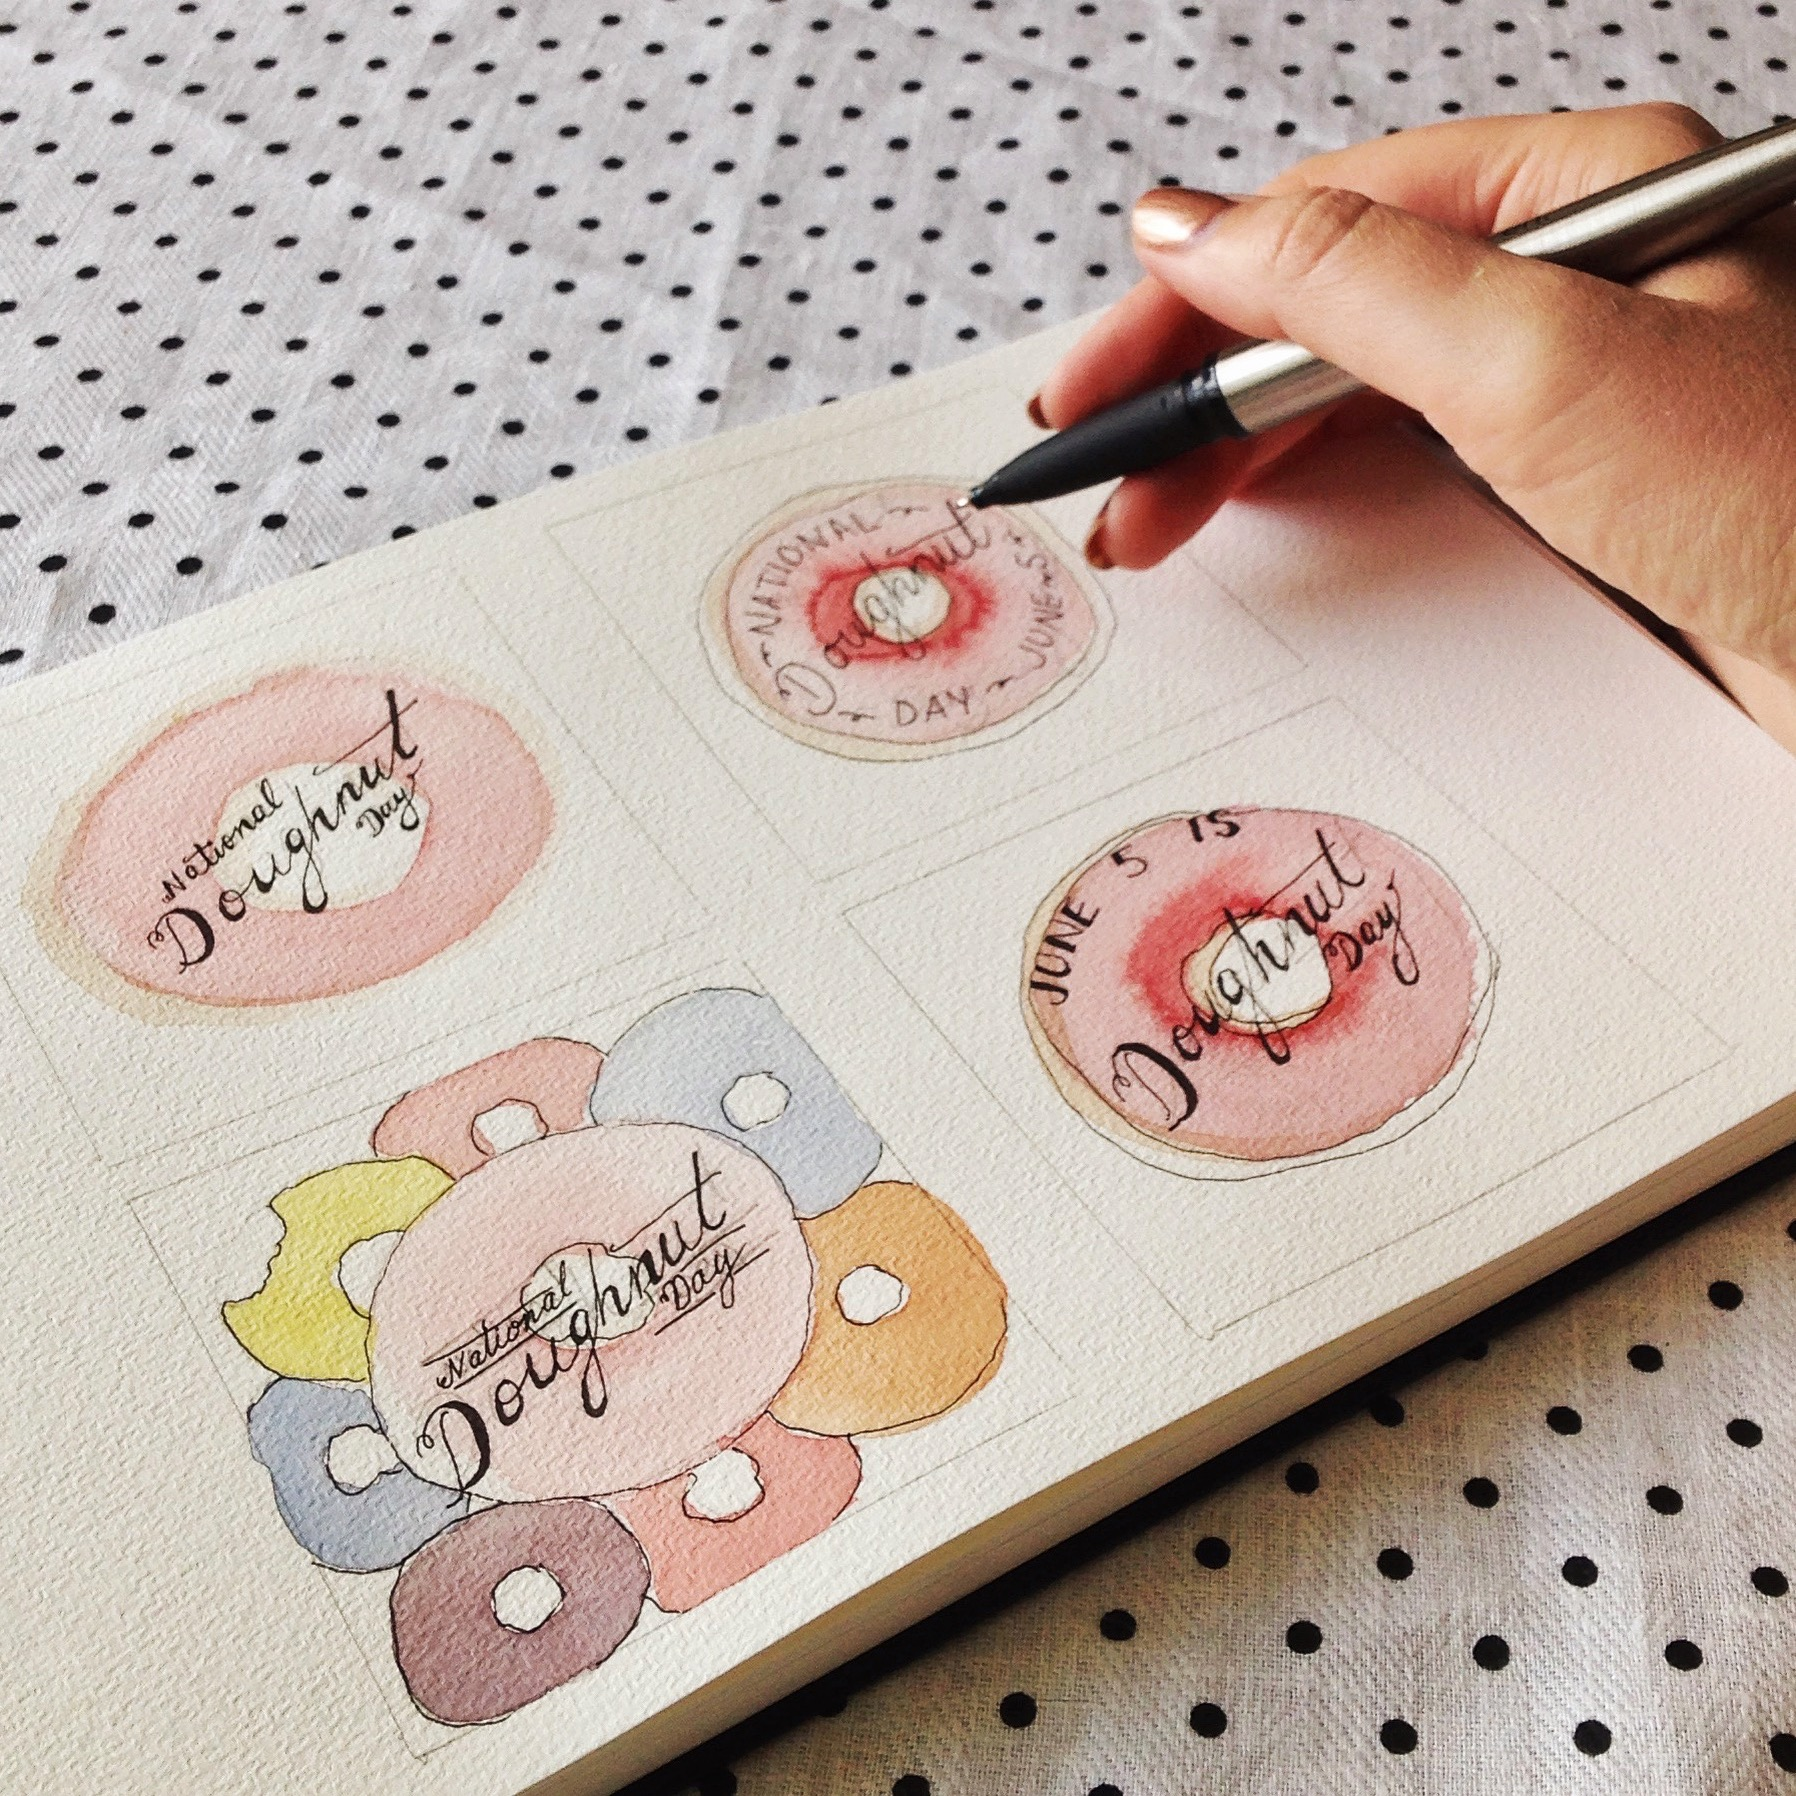 Sketching Donut Day thumbnails in my Sketchbook.